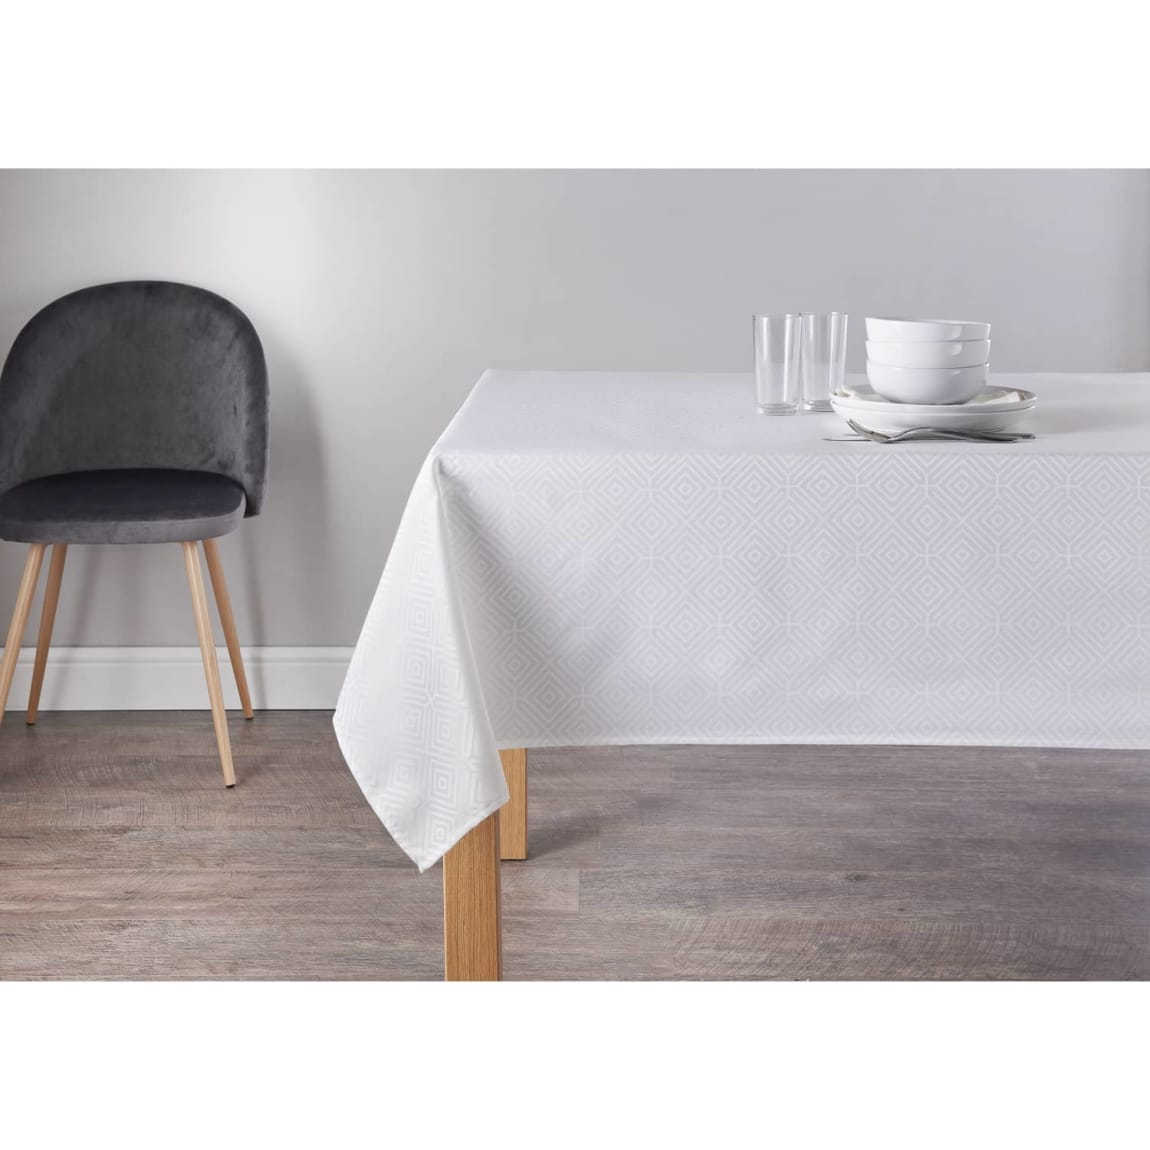 Geo Jacquard Tablecloth 132 x 230cm - White